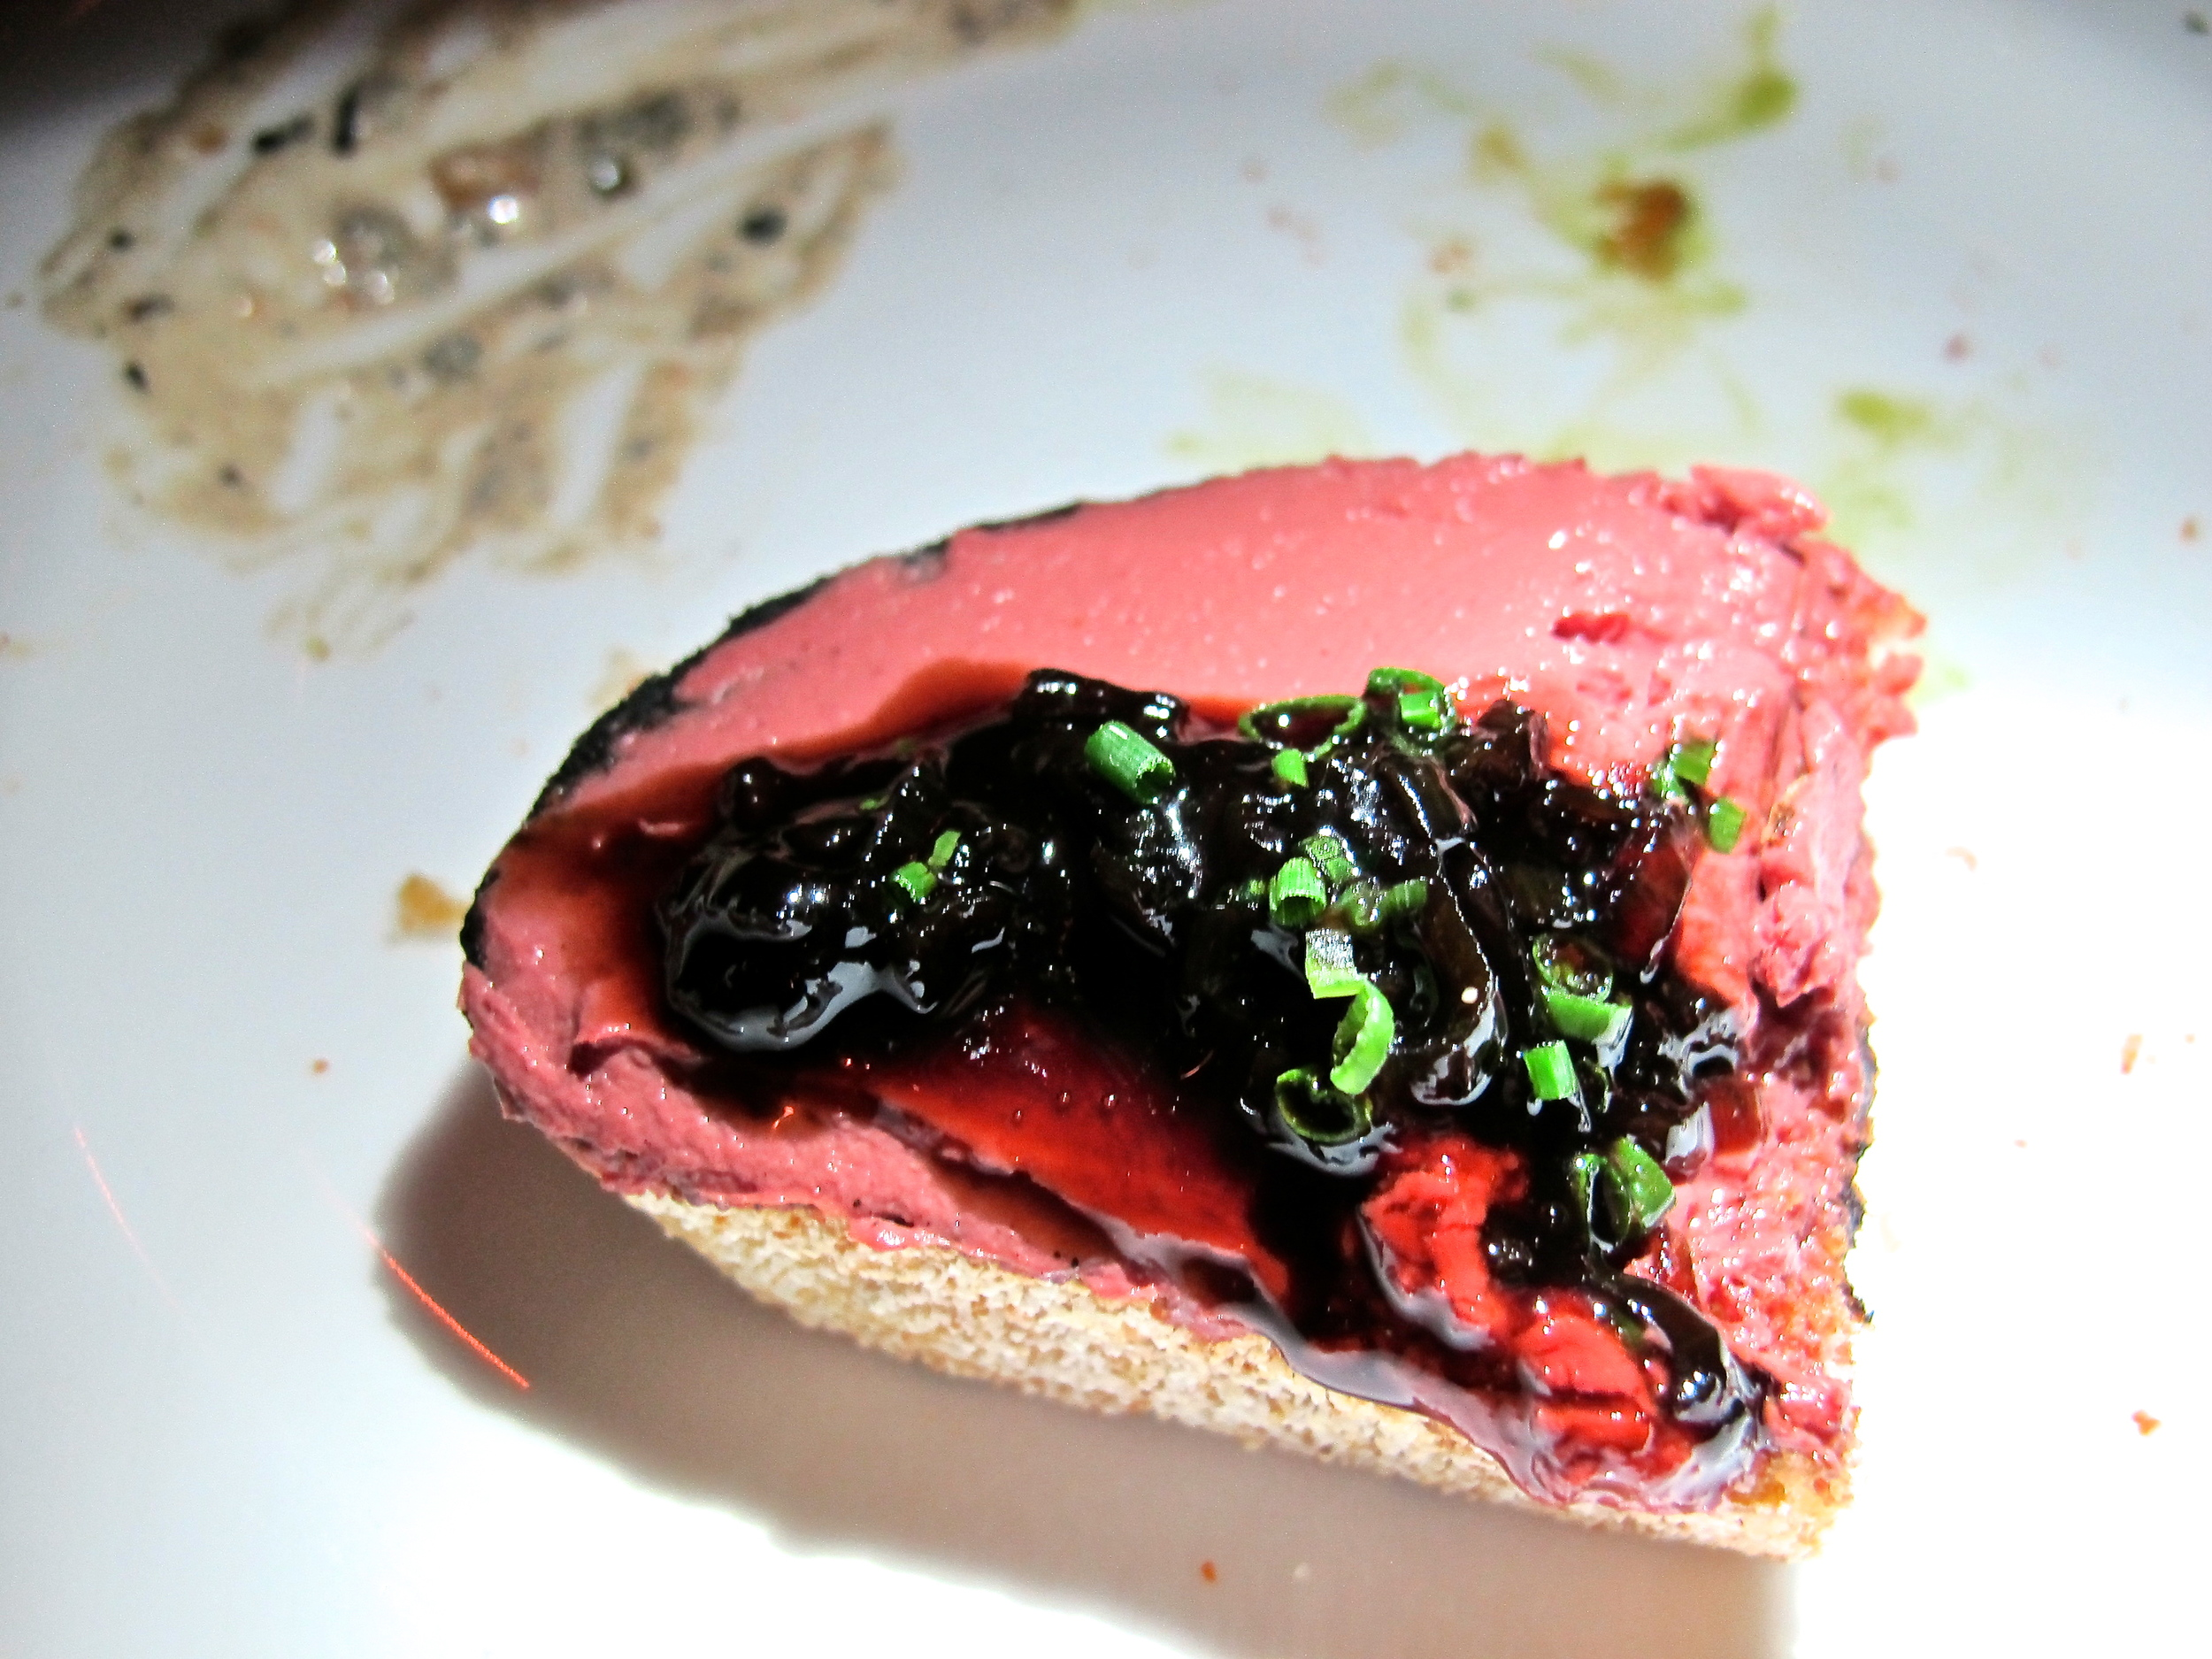 Of course I had to order the chicken liver toast. I always have to get as close as I can to our banned foie gras and this appeased me well.